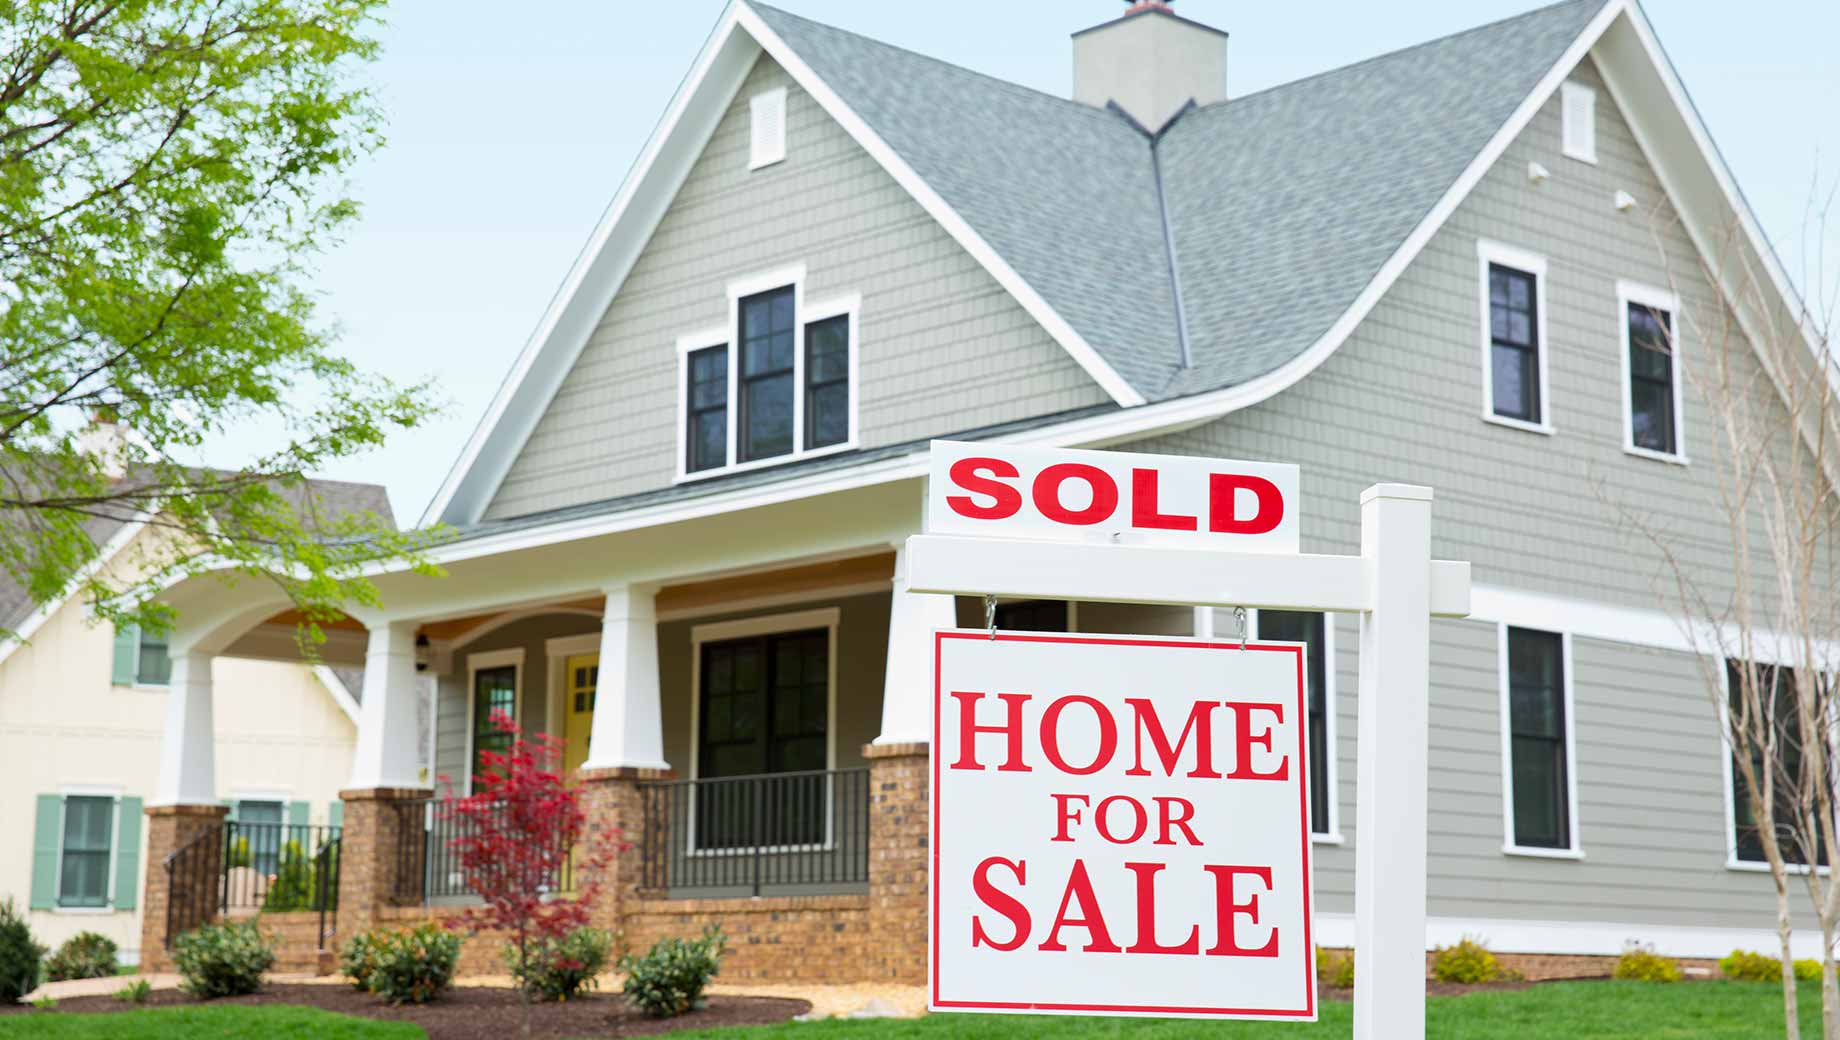 GALLUP – Americans Expect Home Prices to Rise; Divided on Buying Now